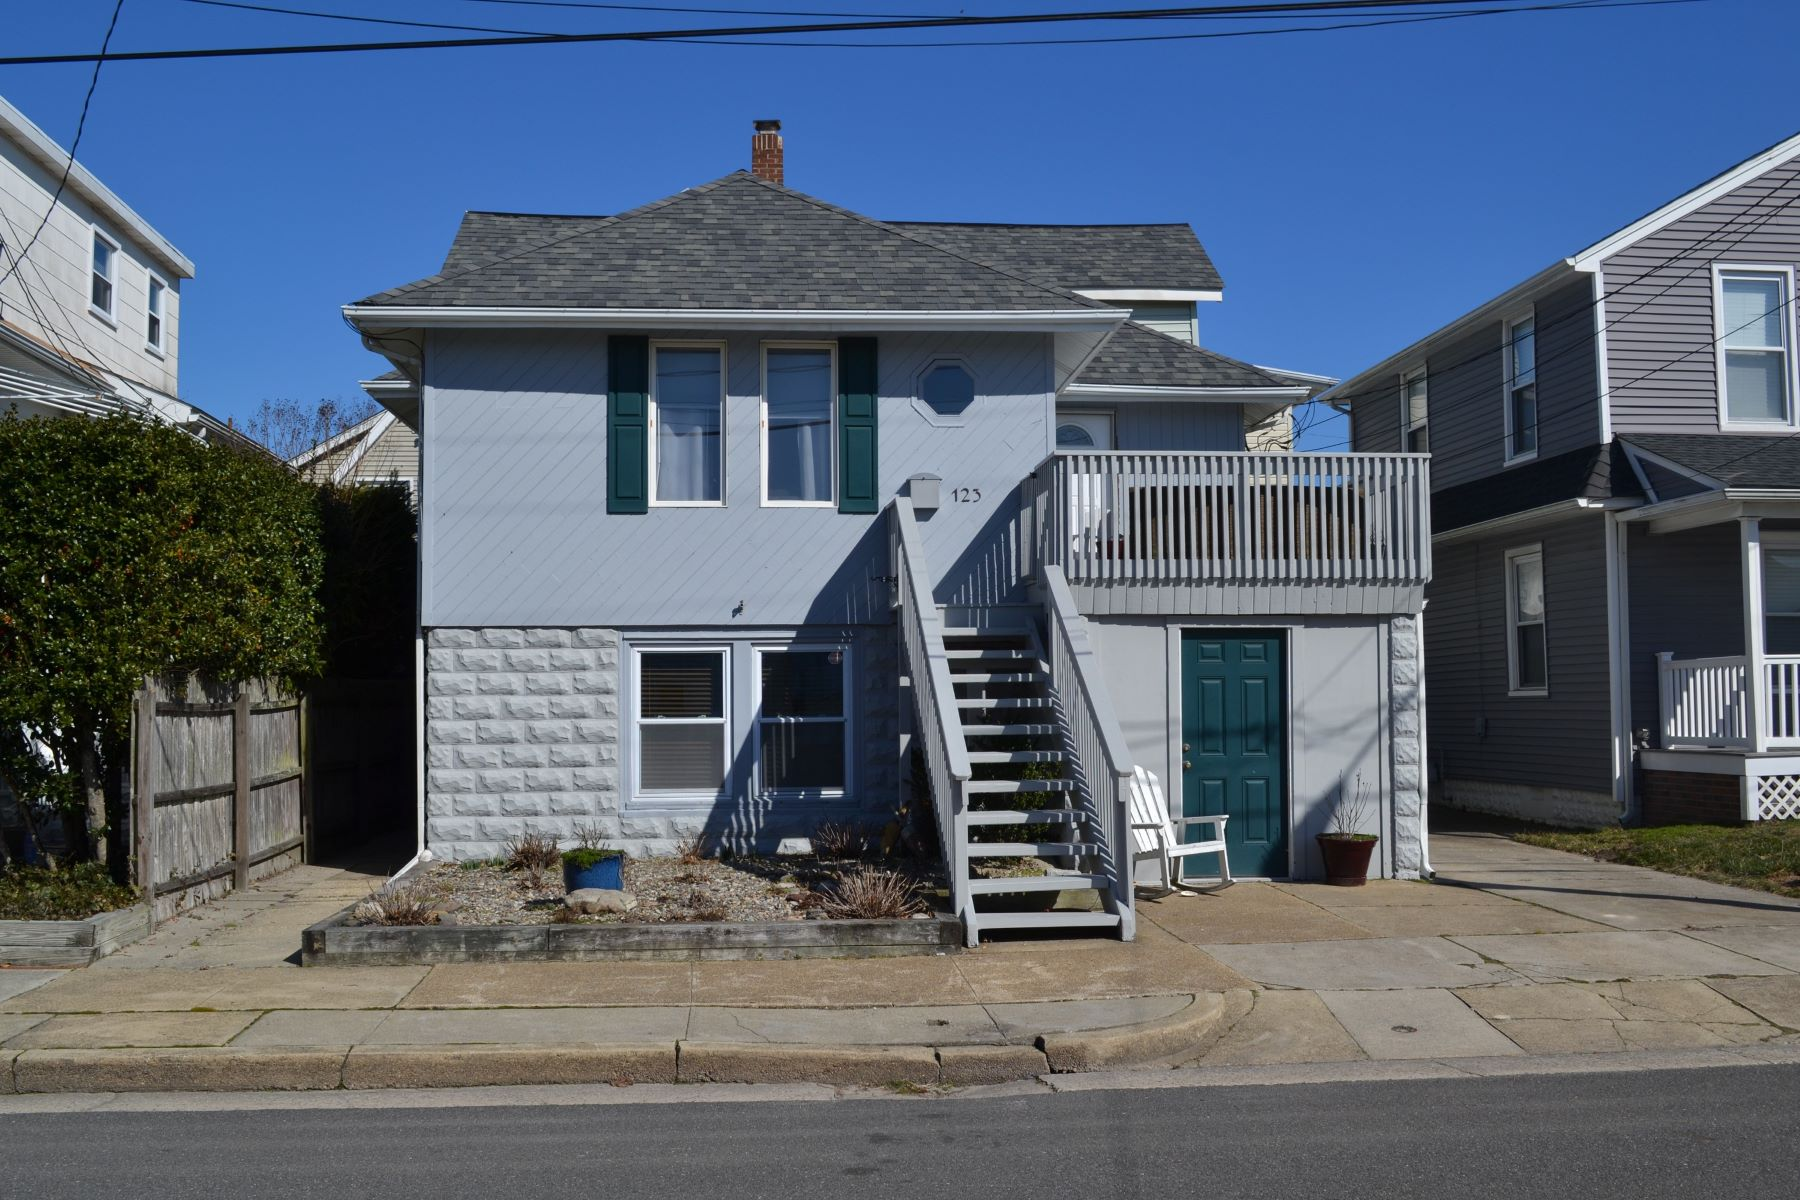 Duplex Homes for Sale at 123 N Newark Ave Ventnor, New Jersey 08406 United States